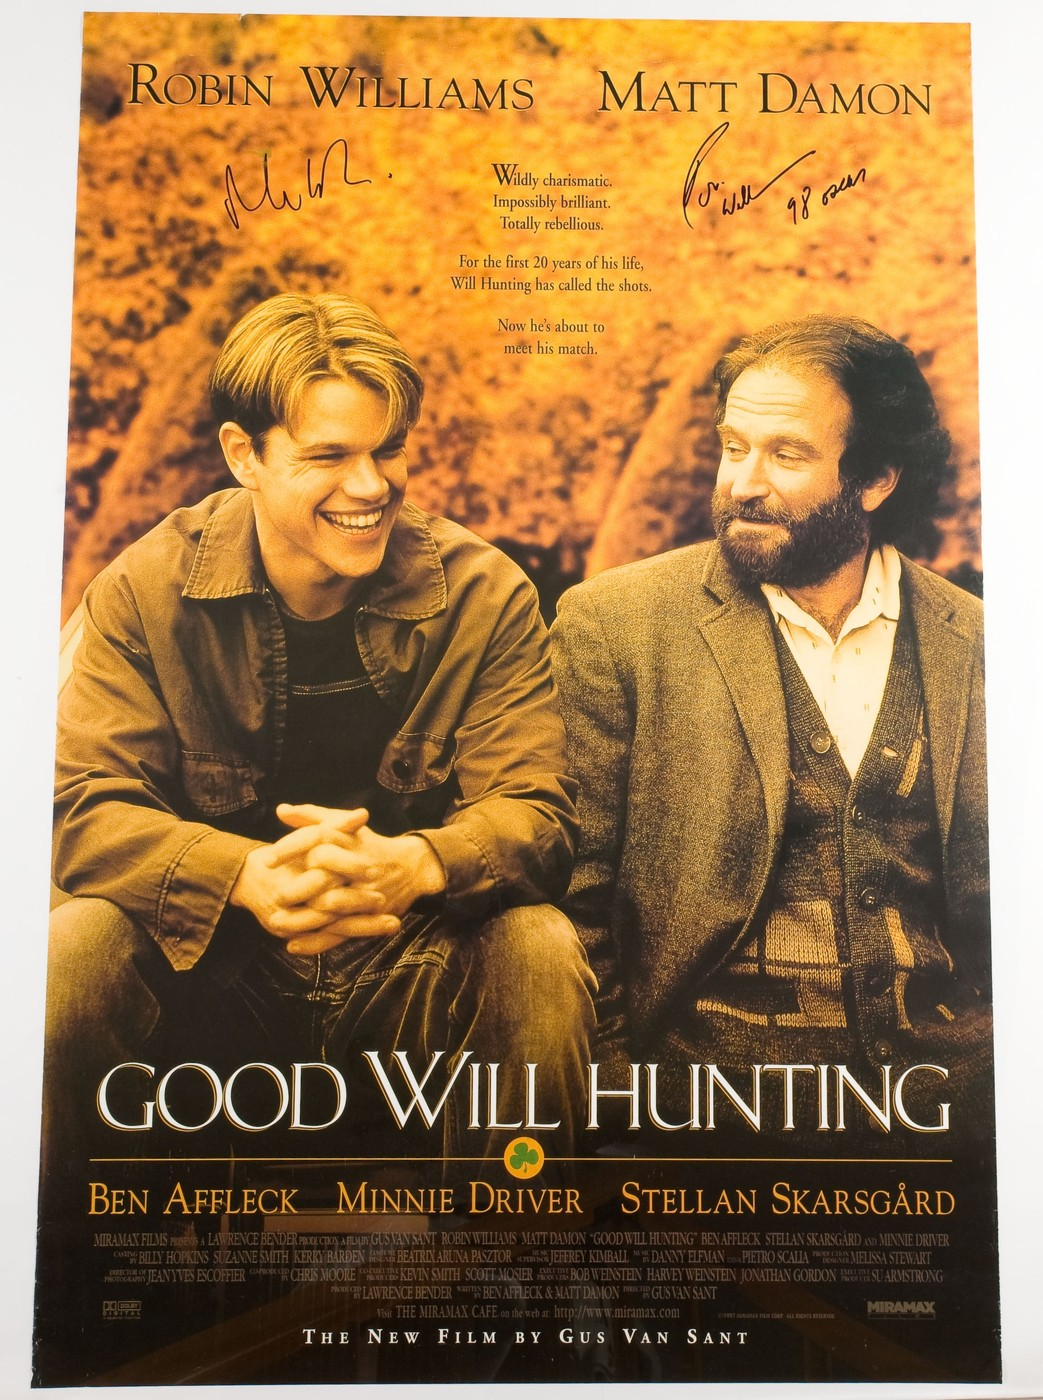 Good Will Hunting Signed By Matt Damon Robin Williams Collectionzz